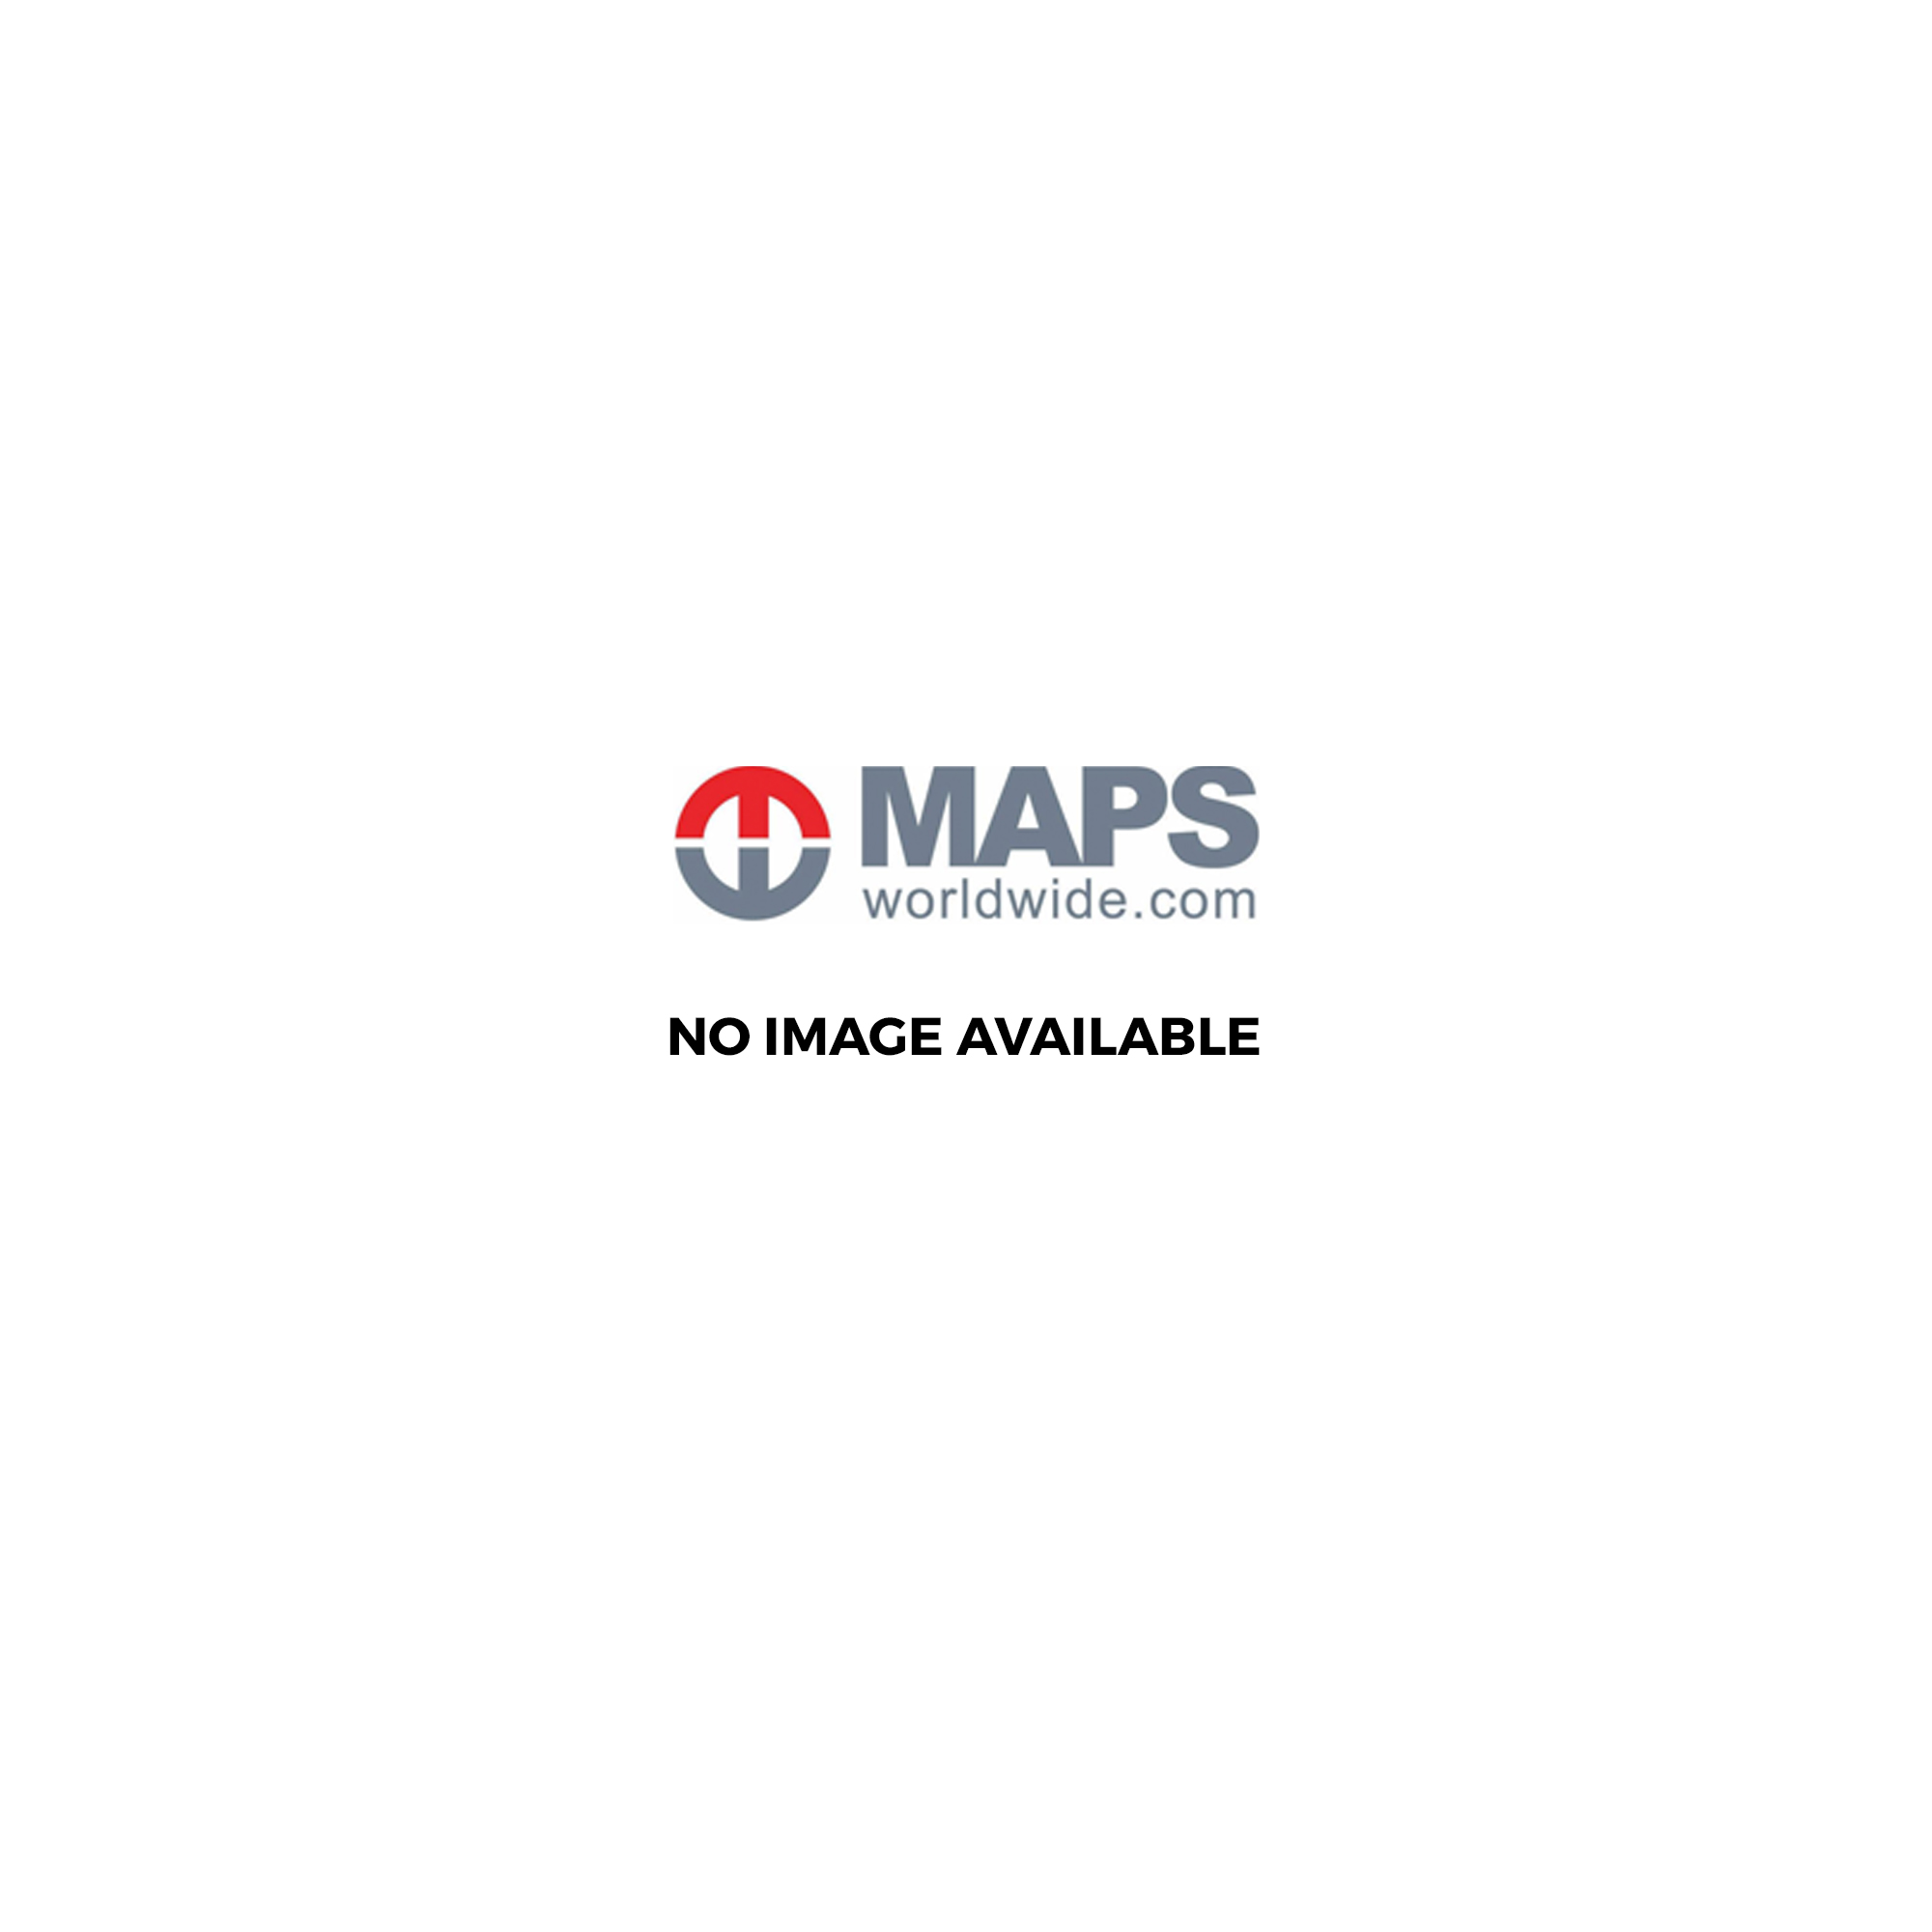 Michelin US Zoom Map 173: Great Lakes